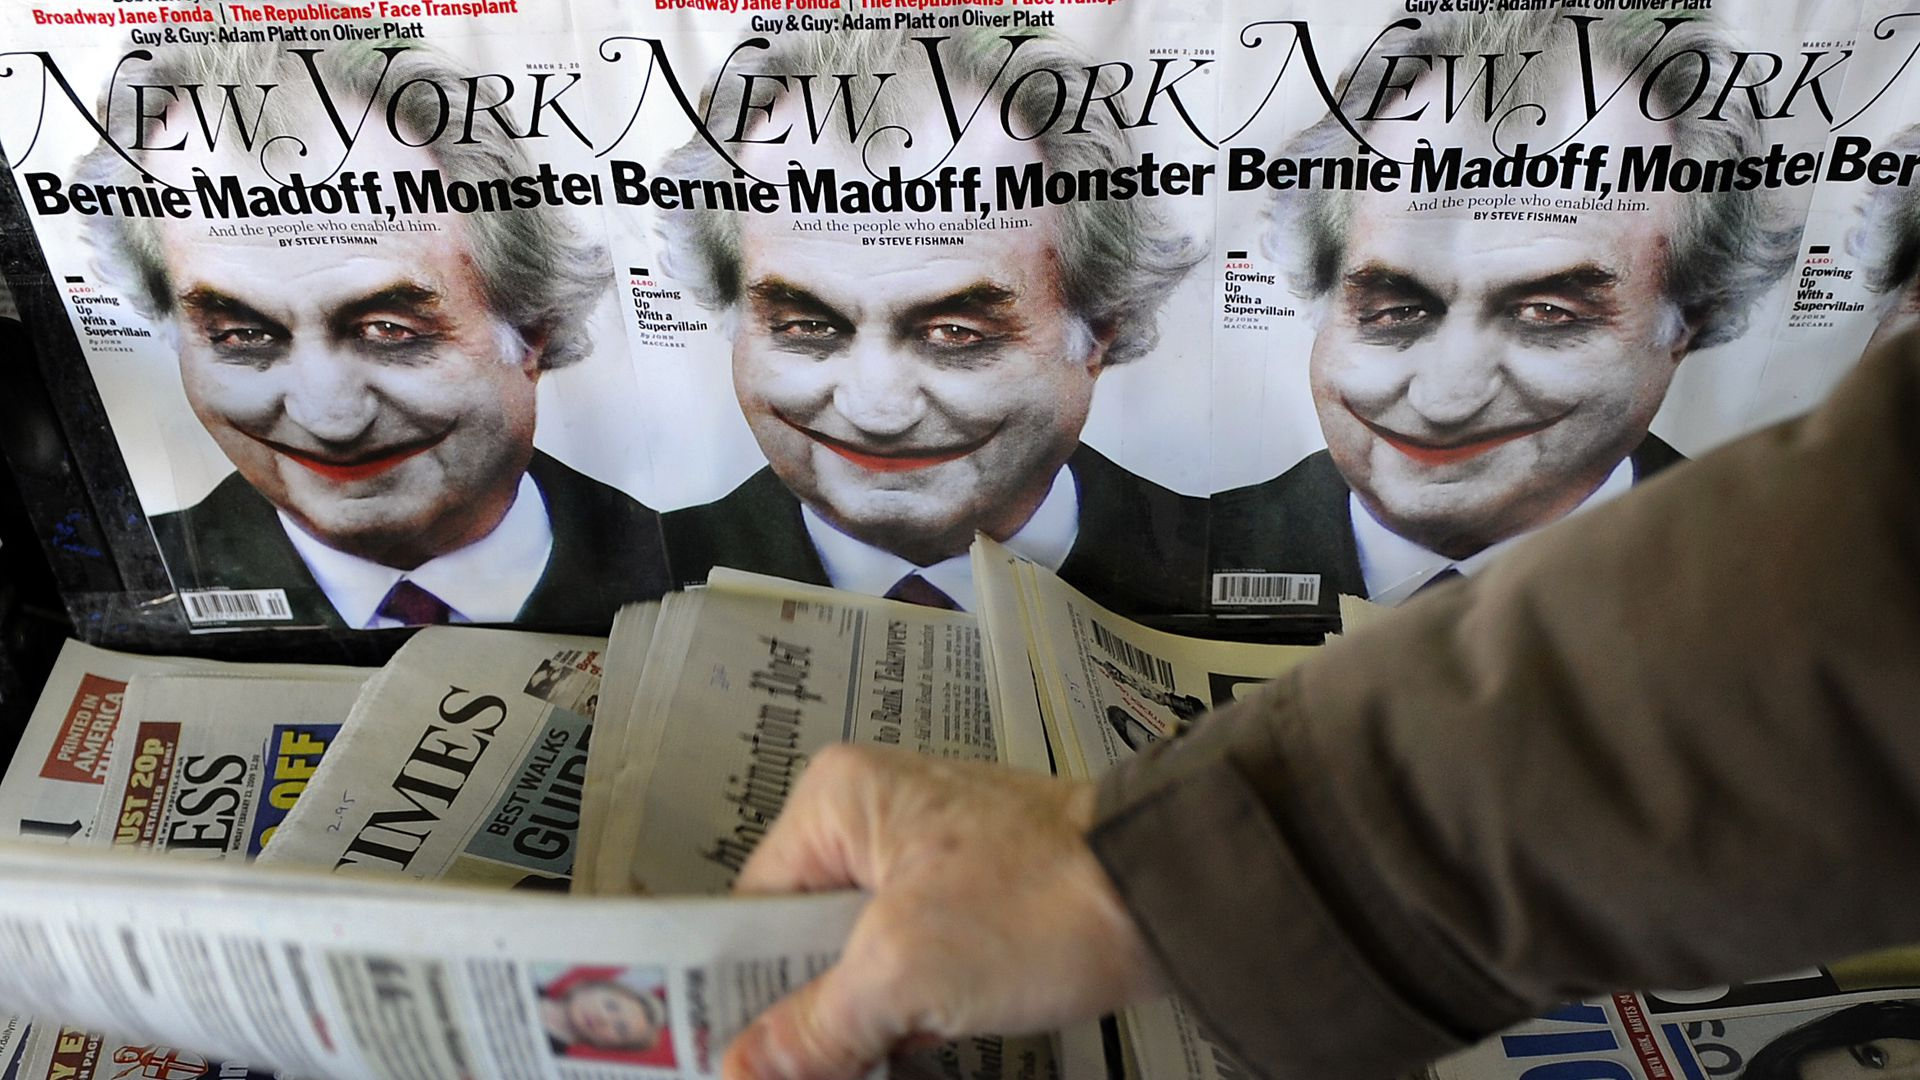 An illustration of Bernard Madoff portrayed as the 'Joker' from Batman on the cover of New York Magazine.